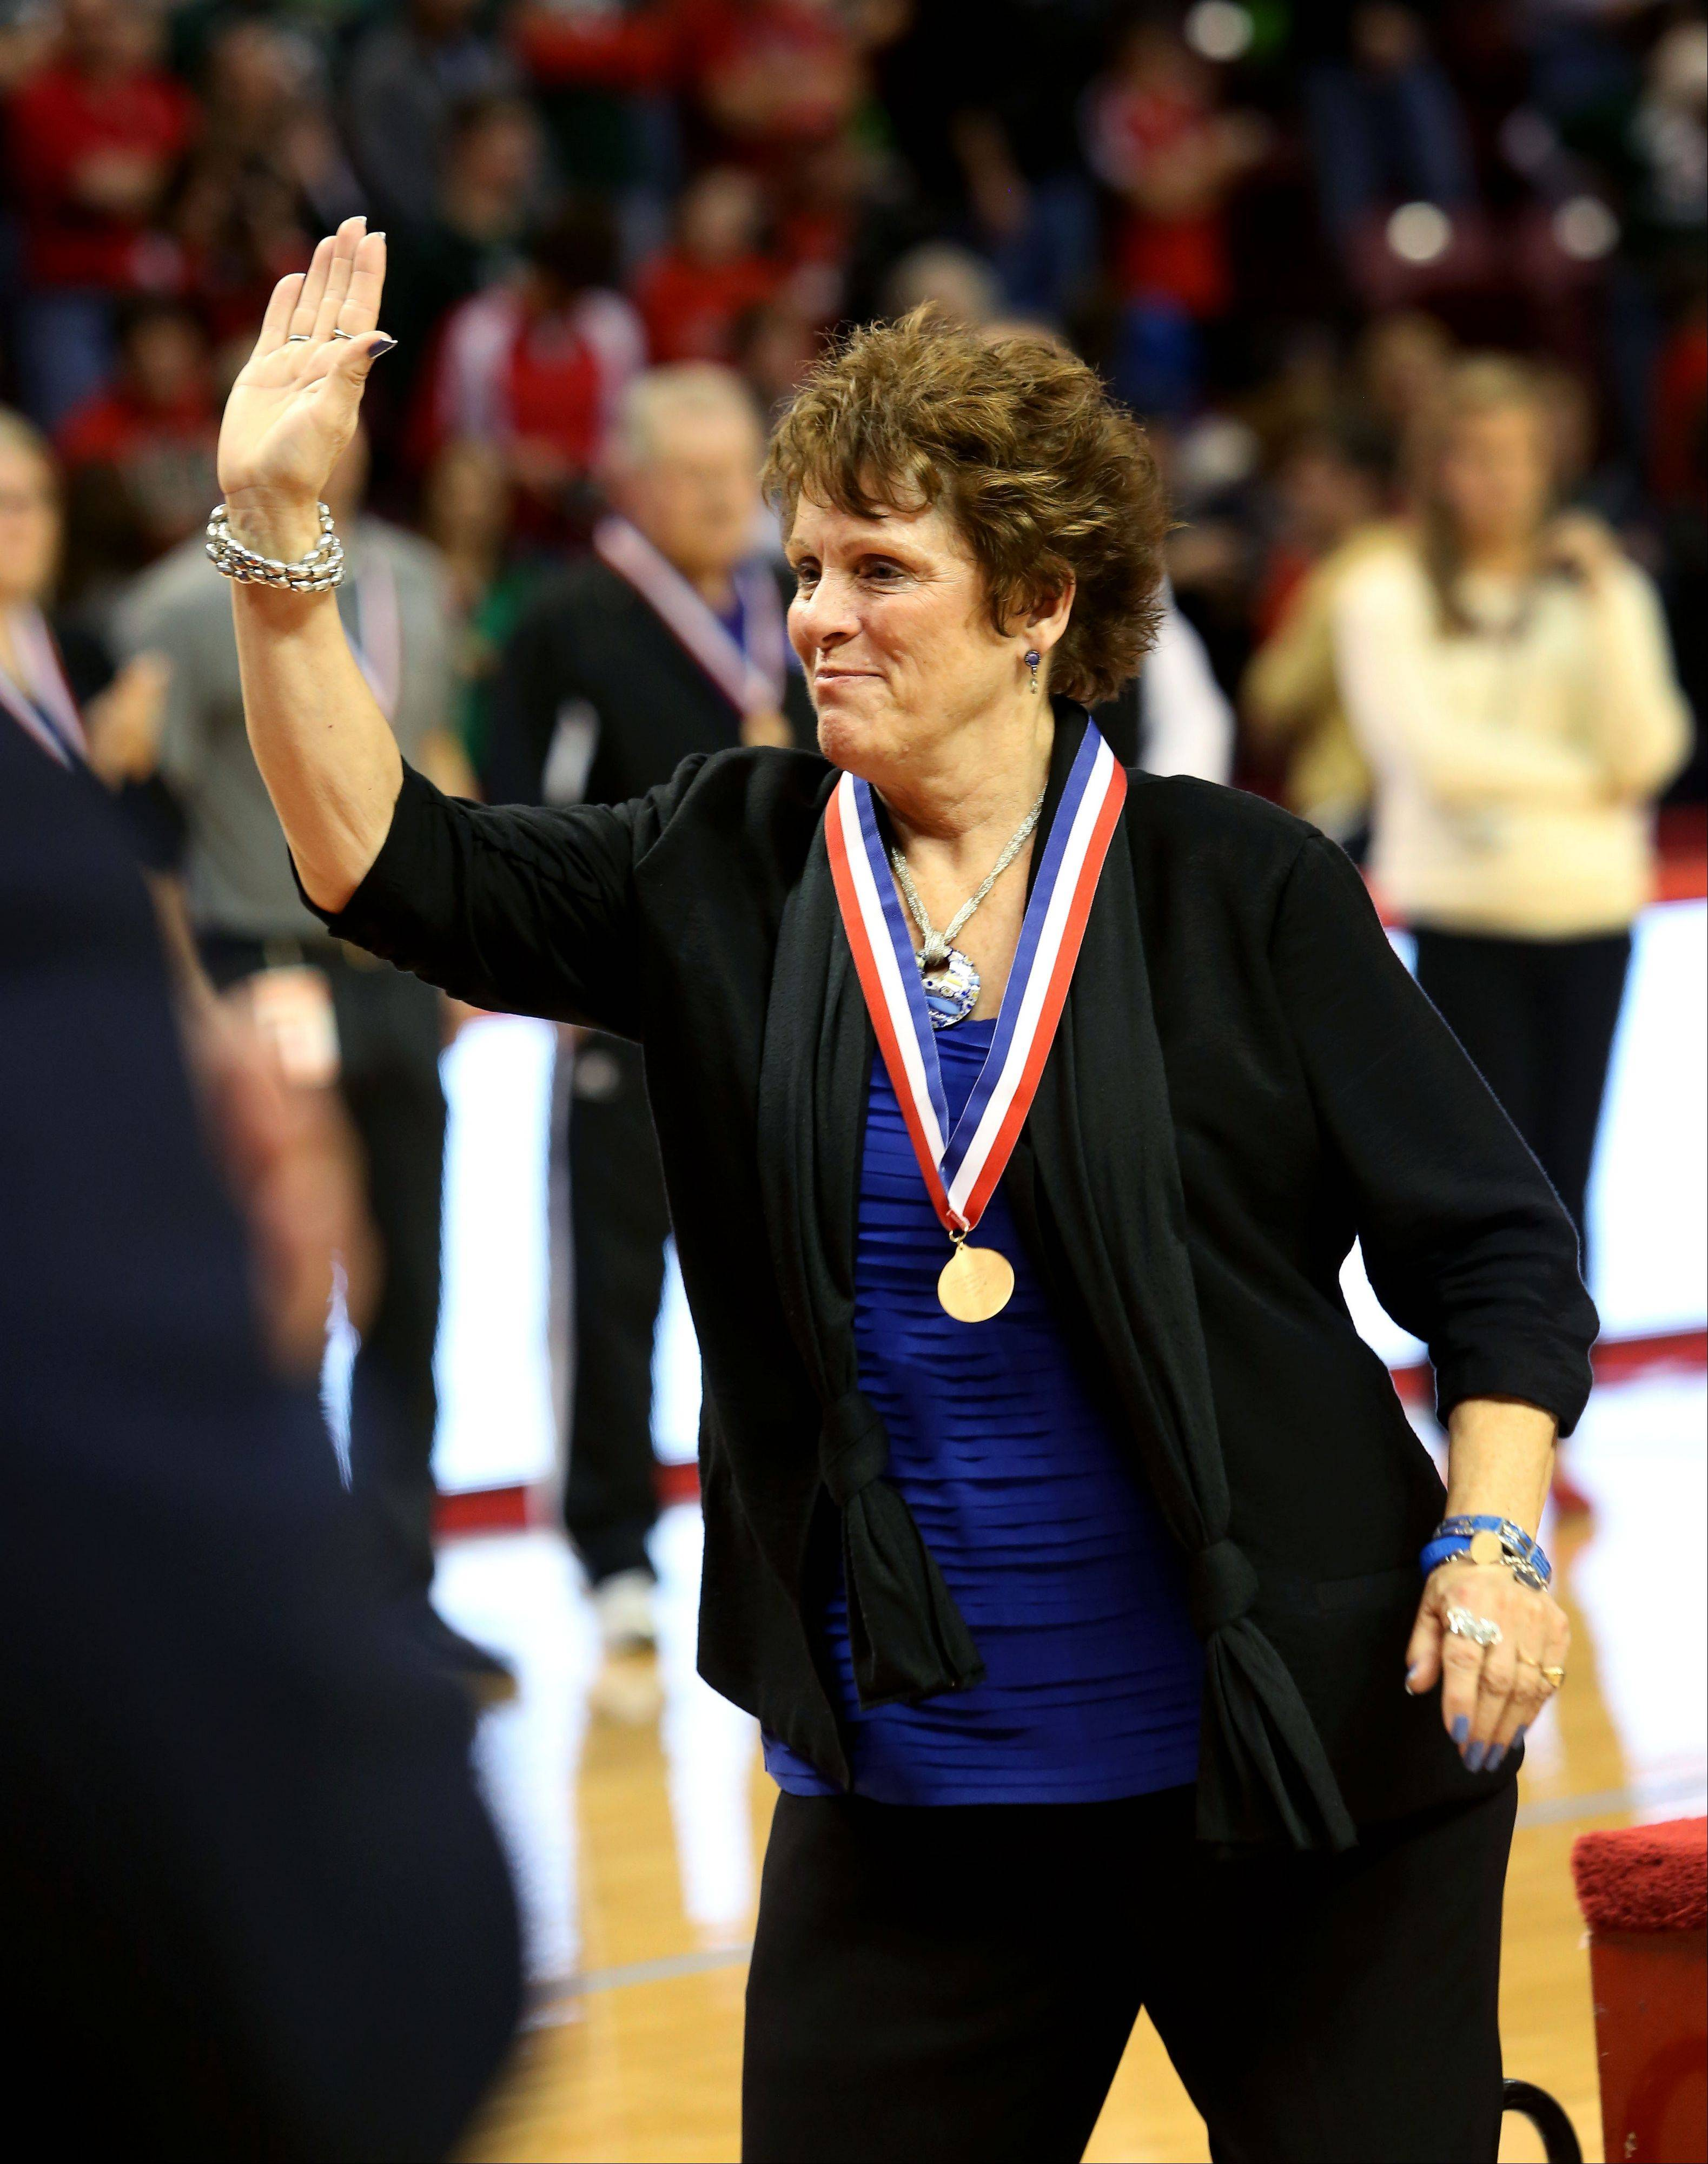 St. Francis coach Peg Kopec takes home another win in the Class 3A championship girls volleyball on Saturday in Normal.